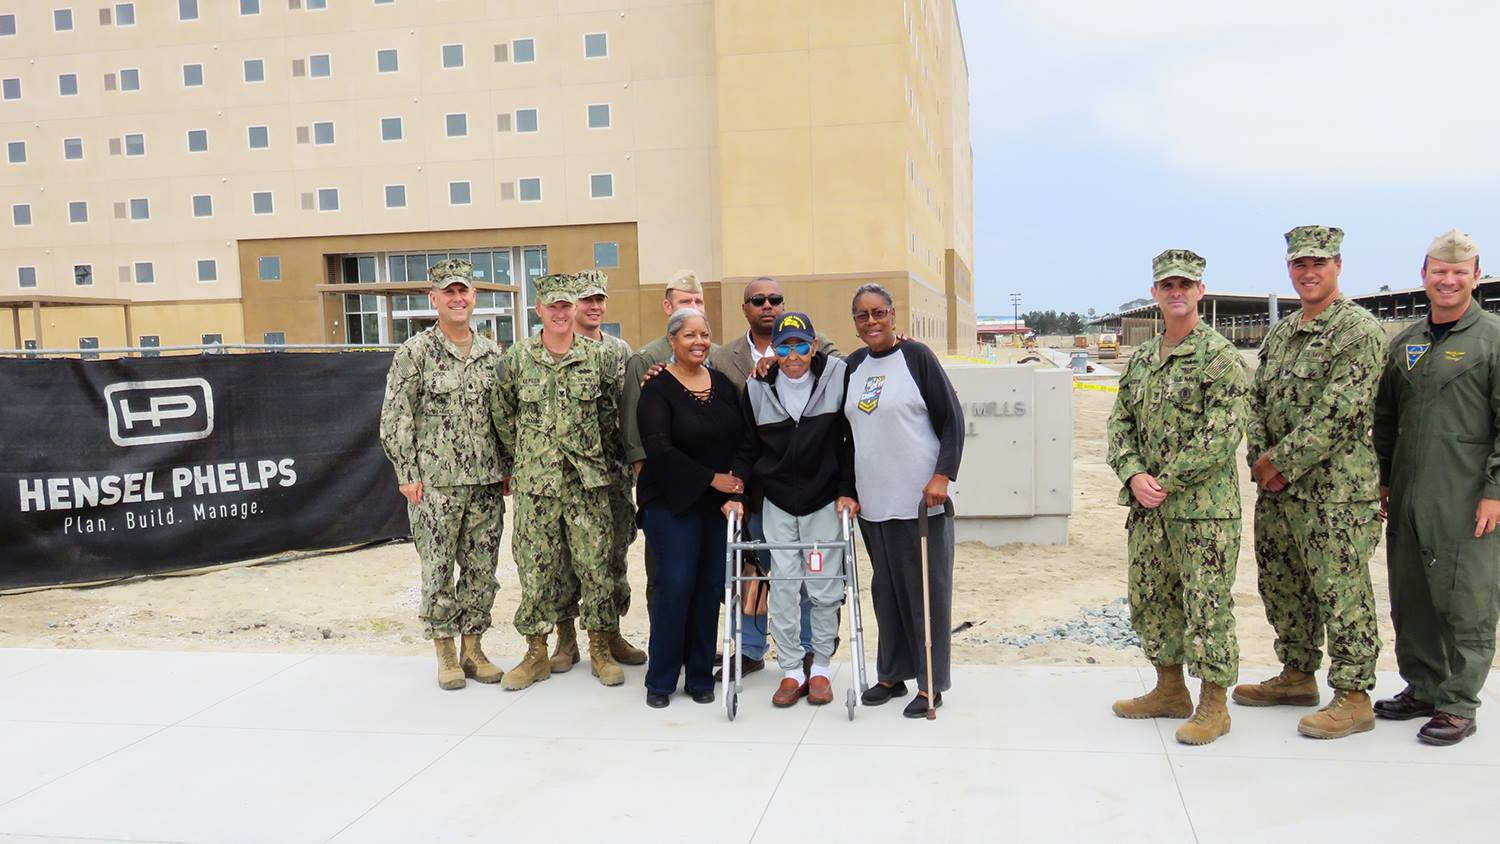 Hensel Phelps staff collaborate with military authorities